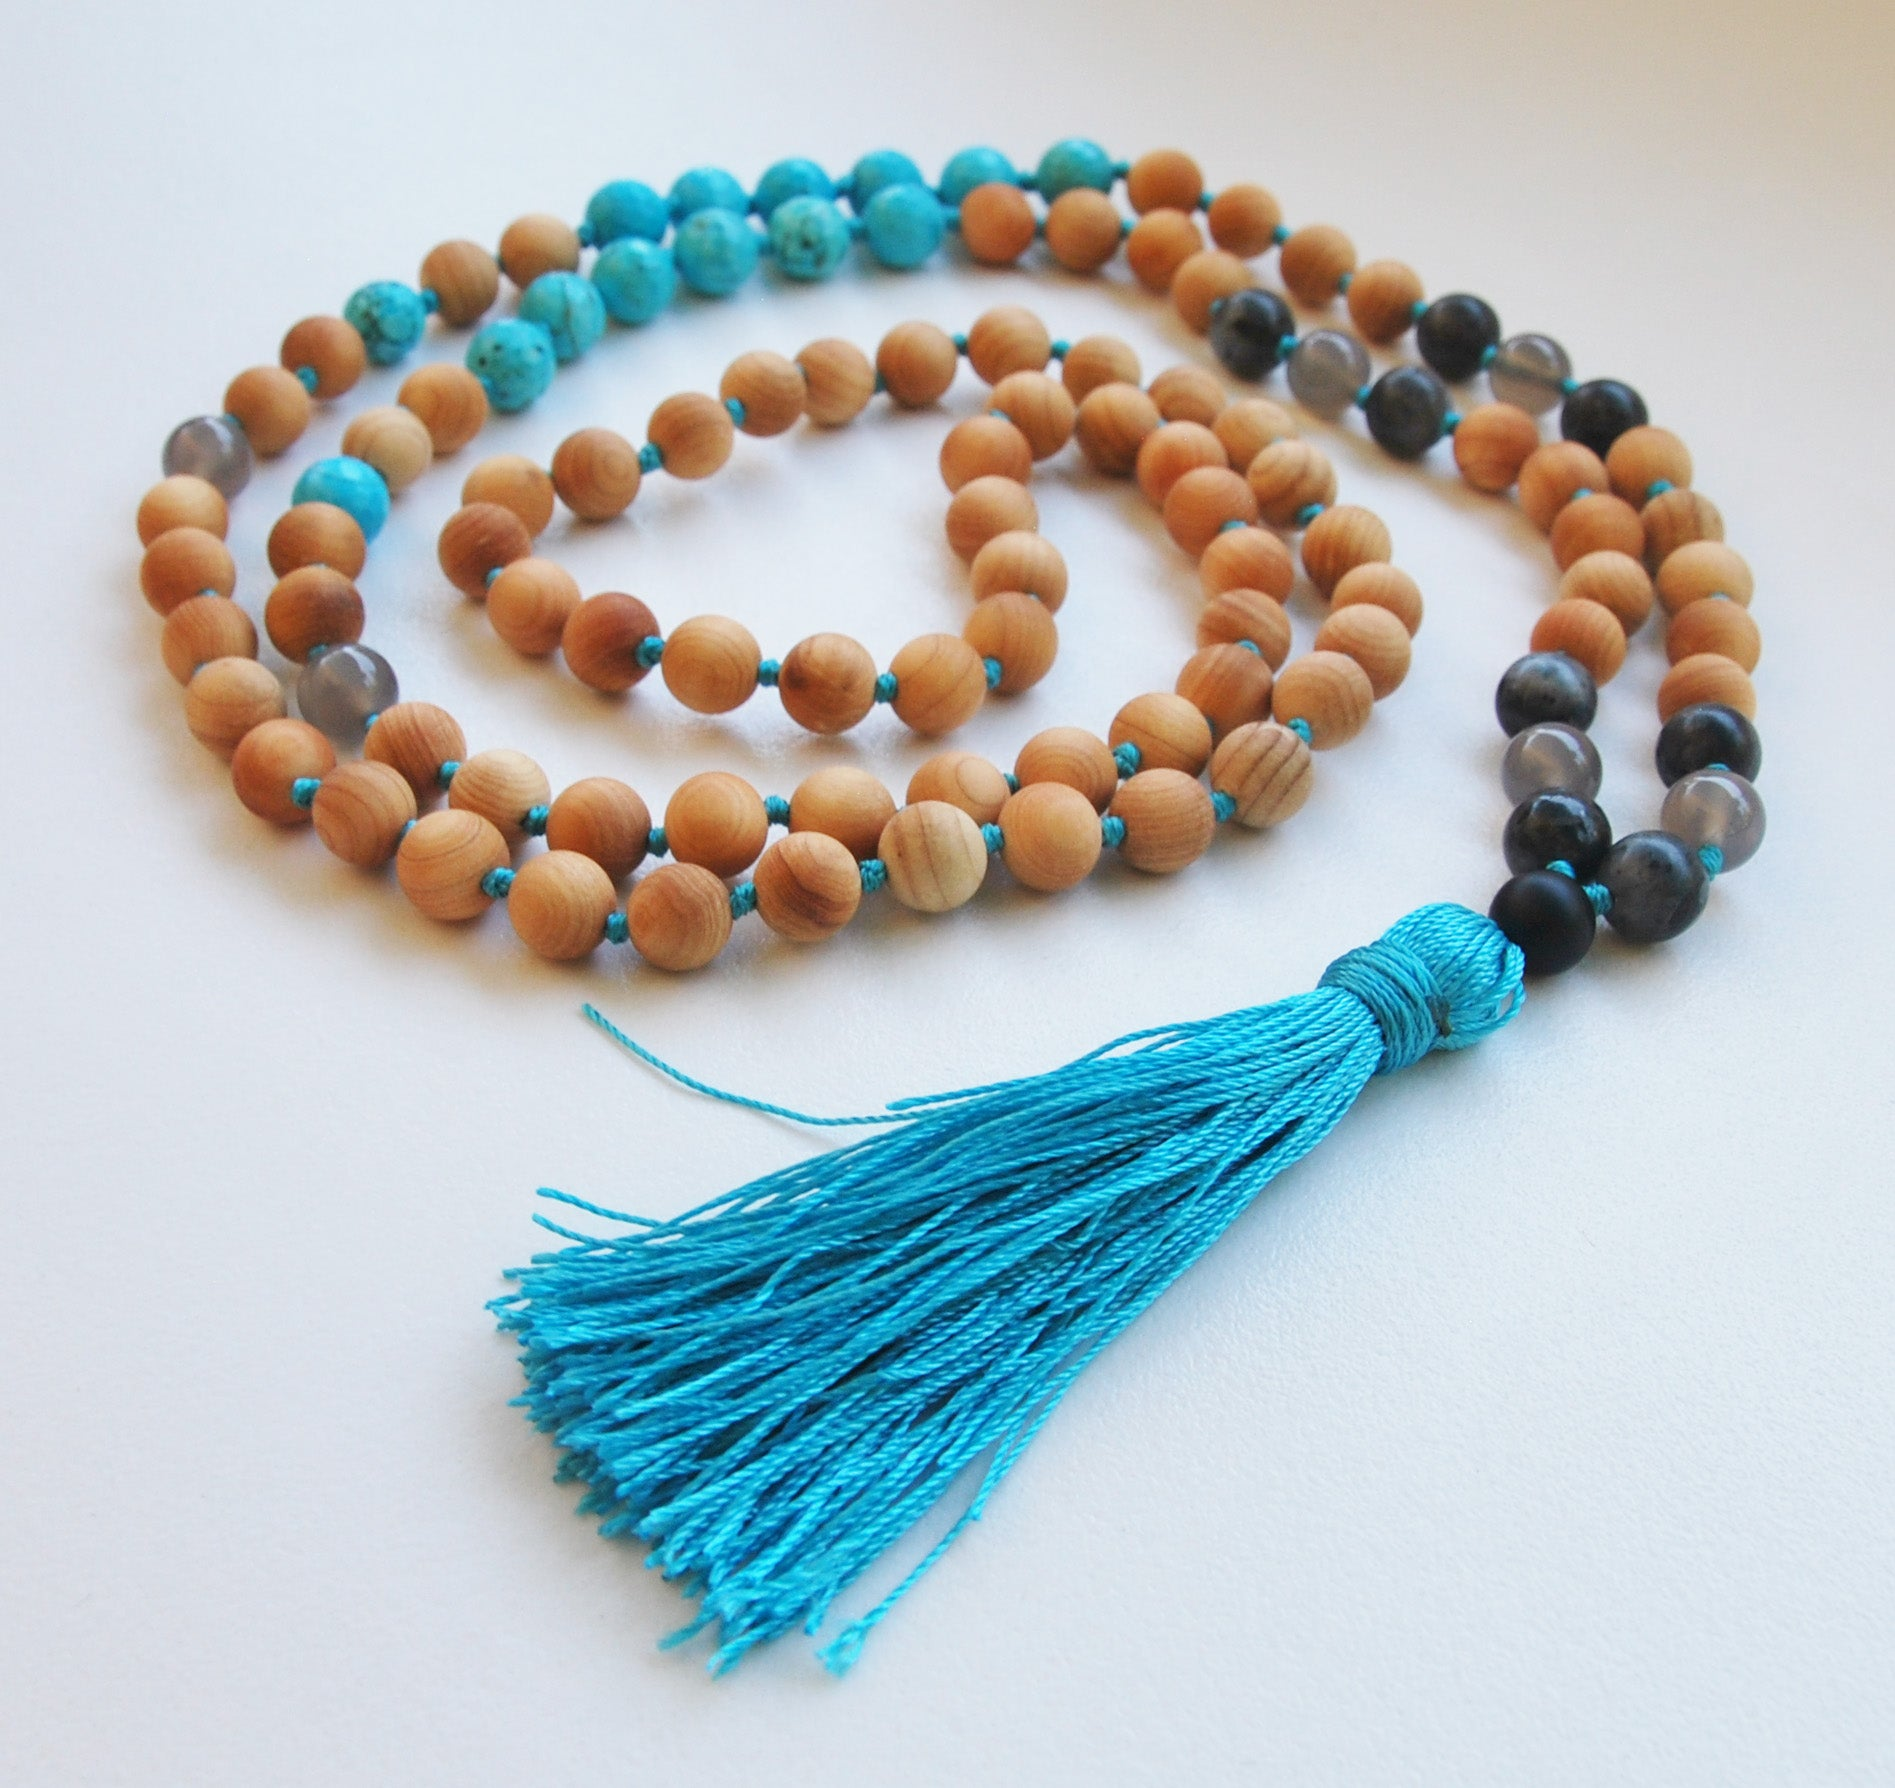 8mm Cypress & Faceted Turquoise 108 Knotted Mala Necklace with Colored Tassel